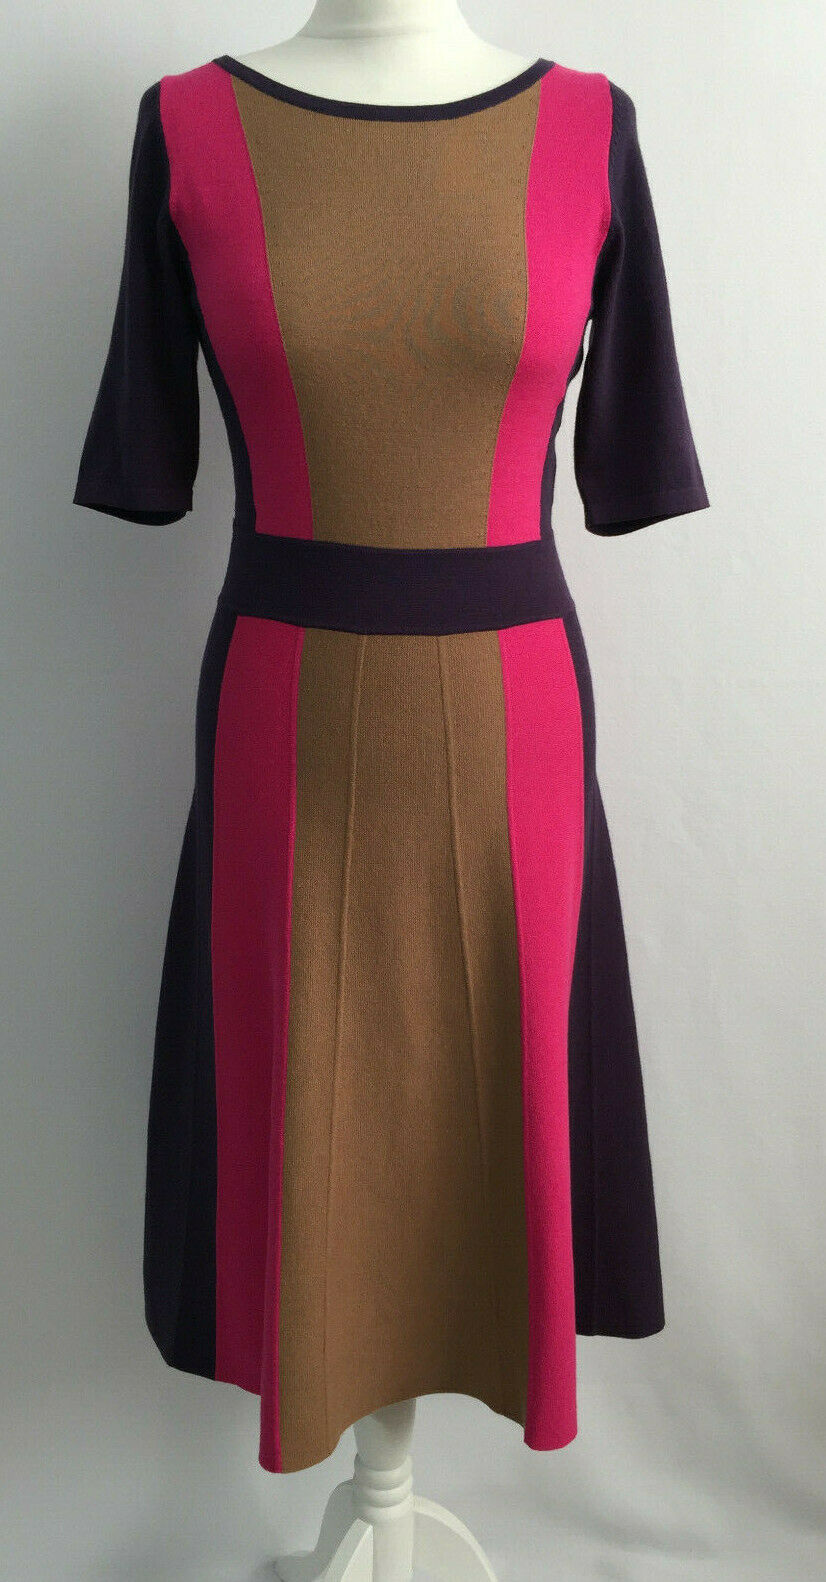 Fab Boden Purple Camel Pink Knit Cotton Viscose Fit Flare Dress 10 Long Tall VGC